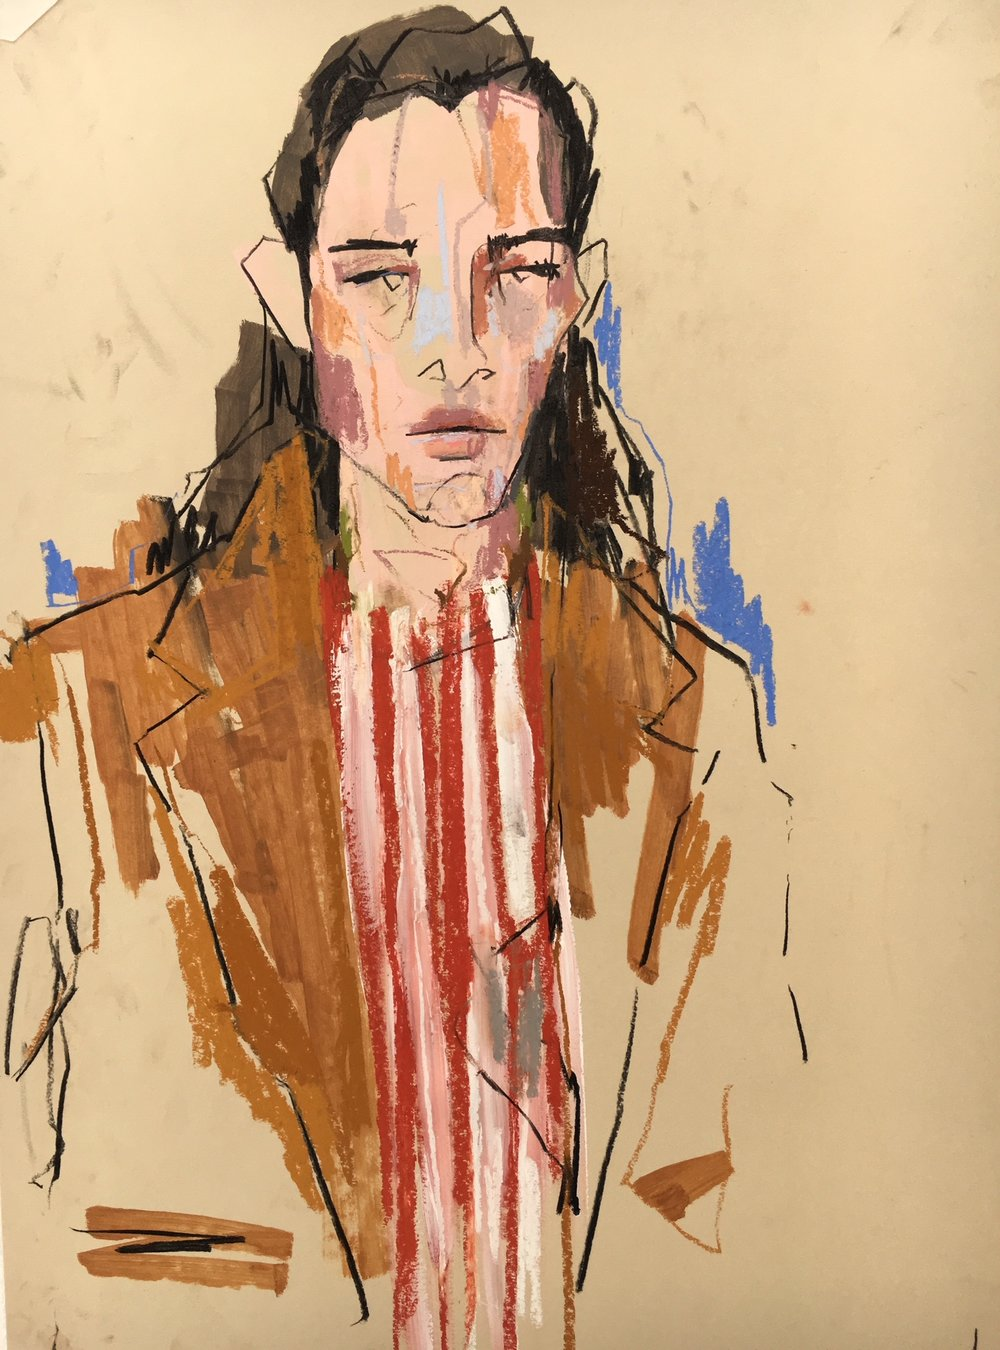 Commissioned by SHOWstudio as part of the SS19 Womenswear London coverage - illustrated live in their London studio.      Click to view/shop the piece on the SHOWstudio website.